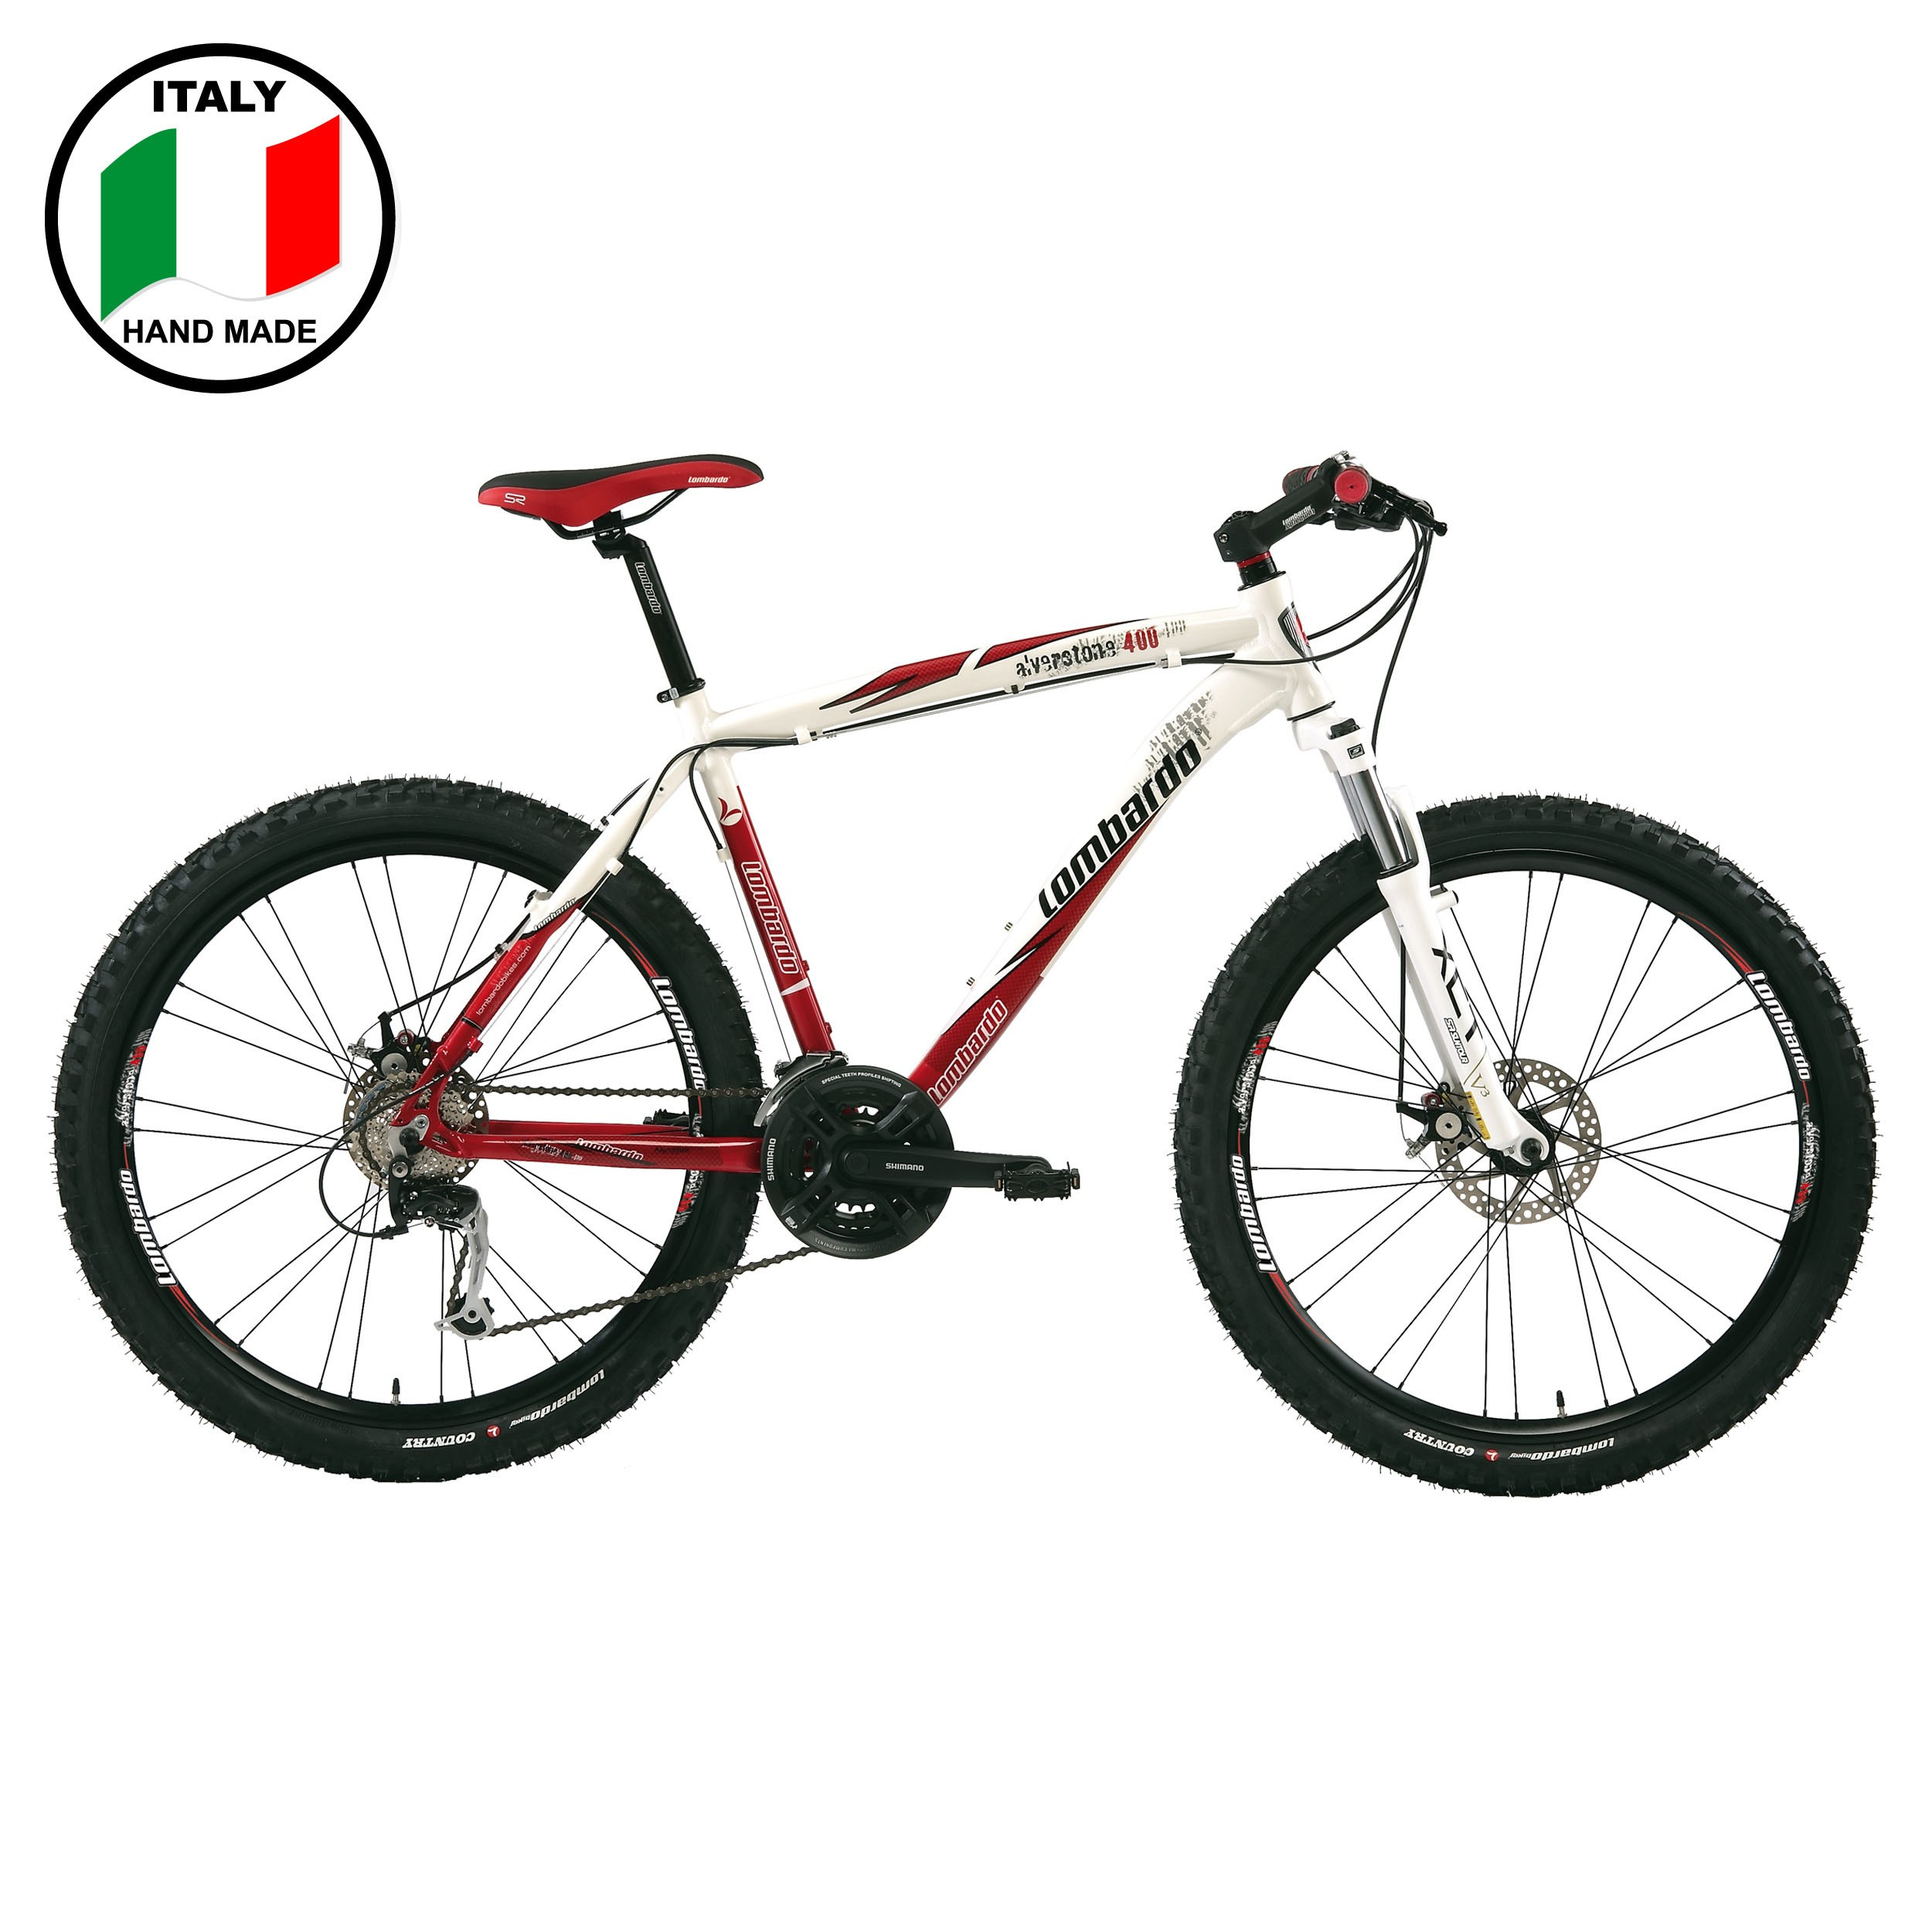 Lombardo Alverstone 400 26 inch Bike- White and Red